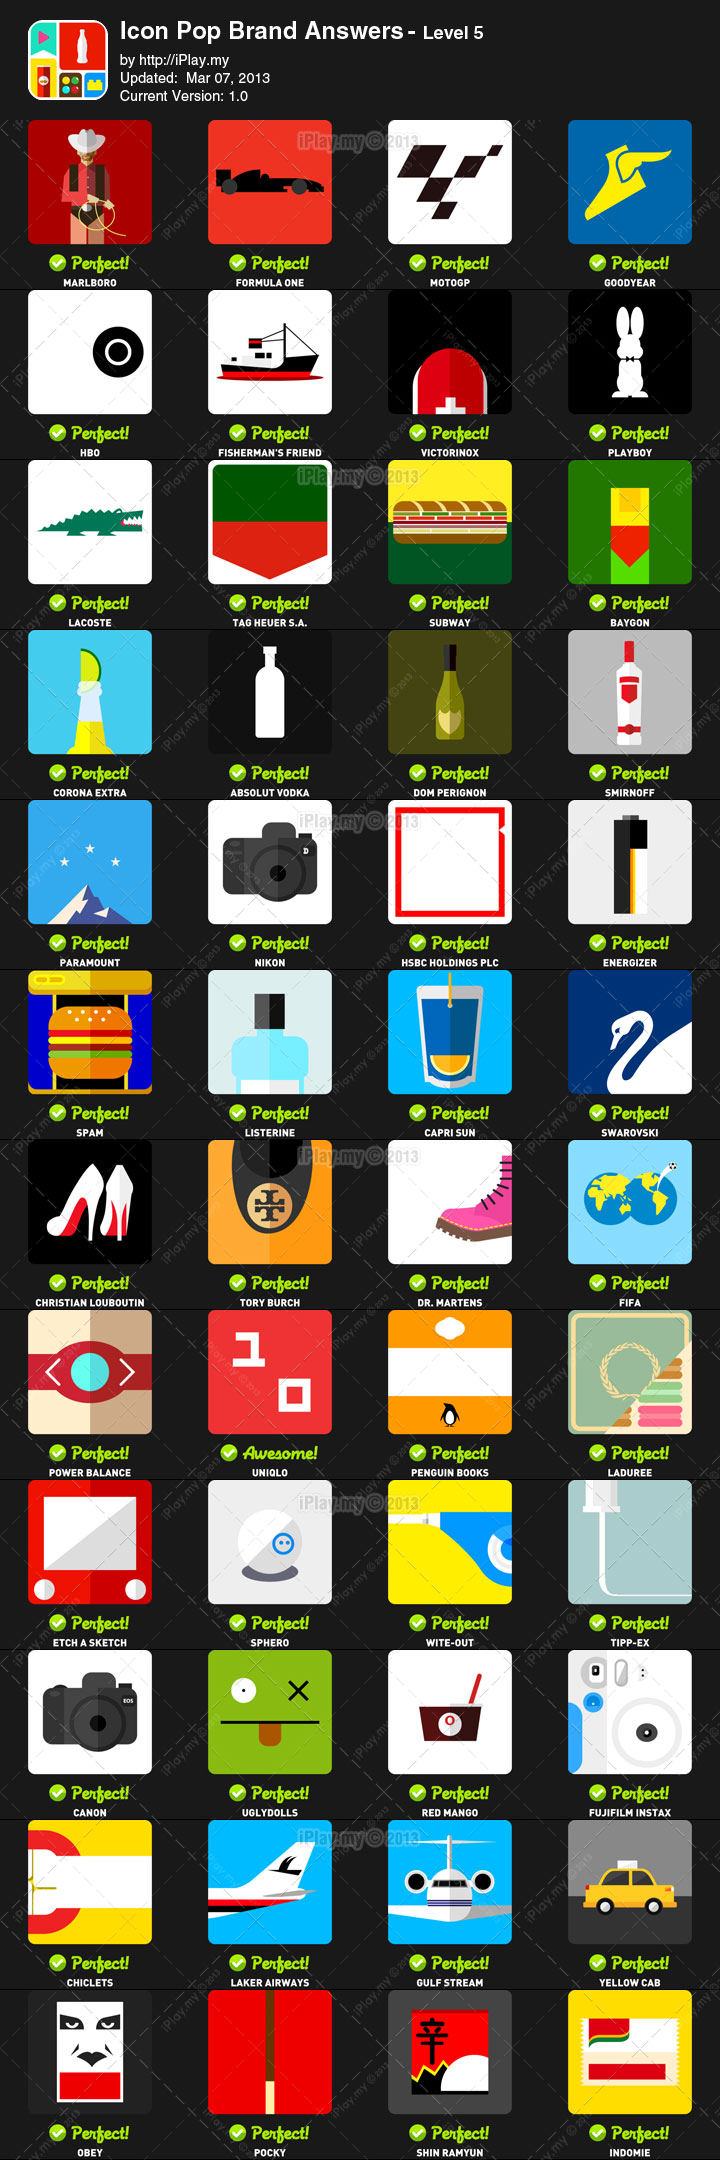 Icon Pop Brand Answers with Pictures Level 5